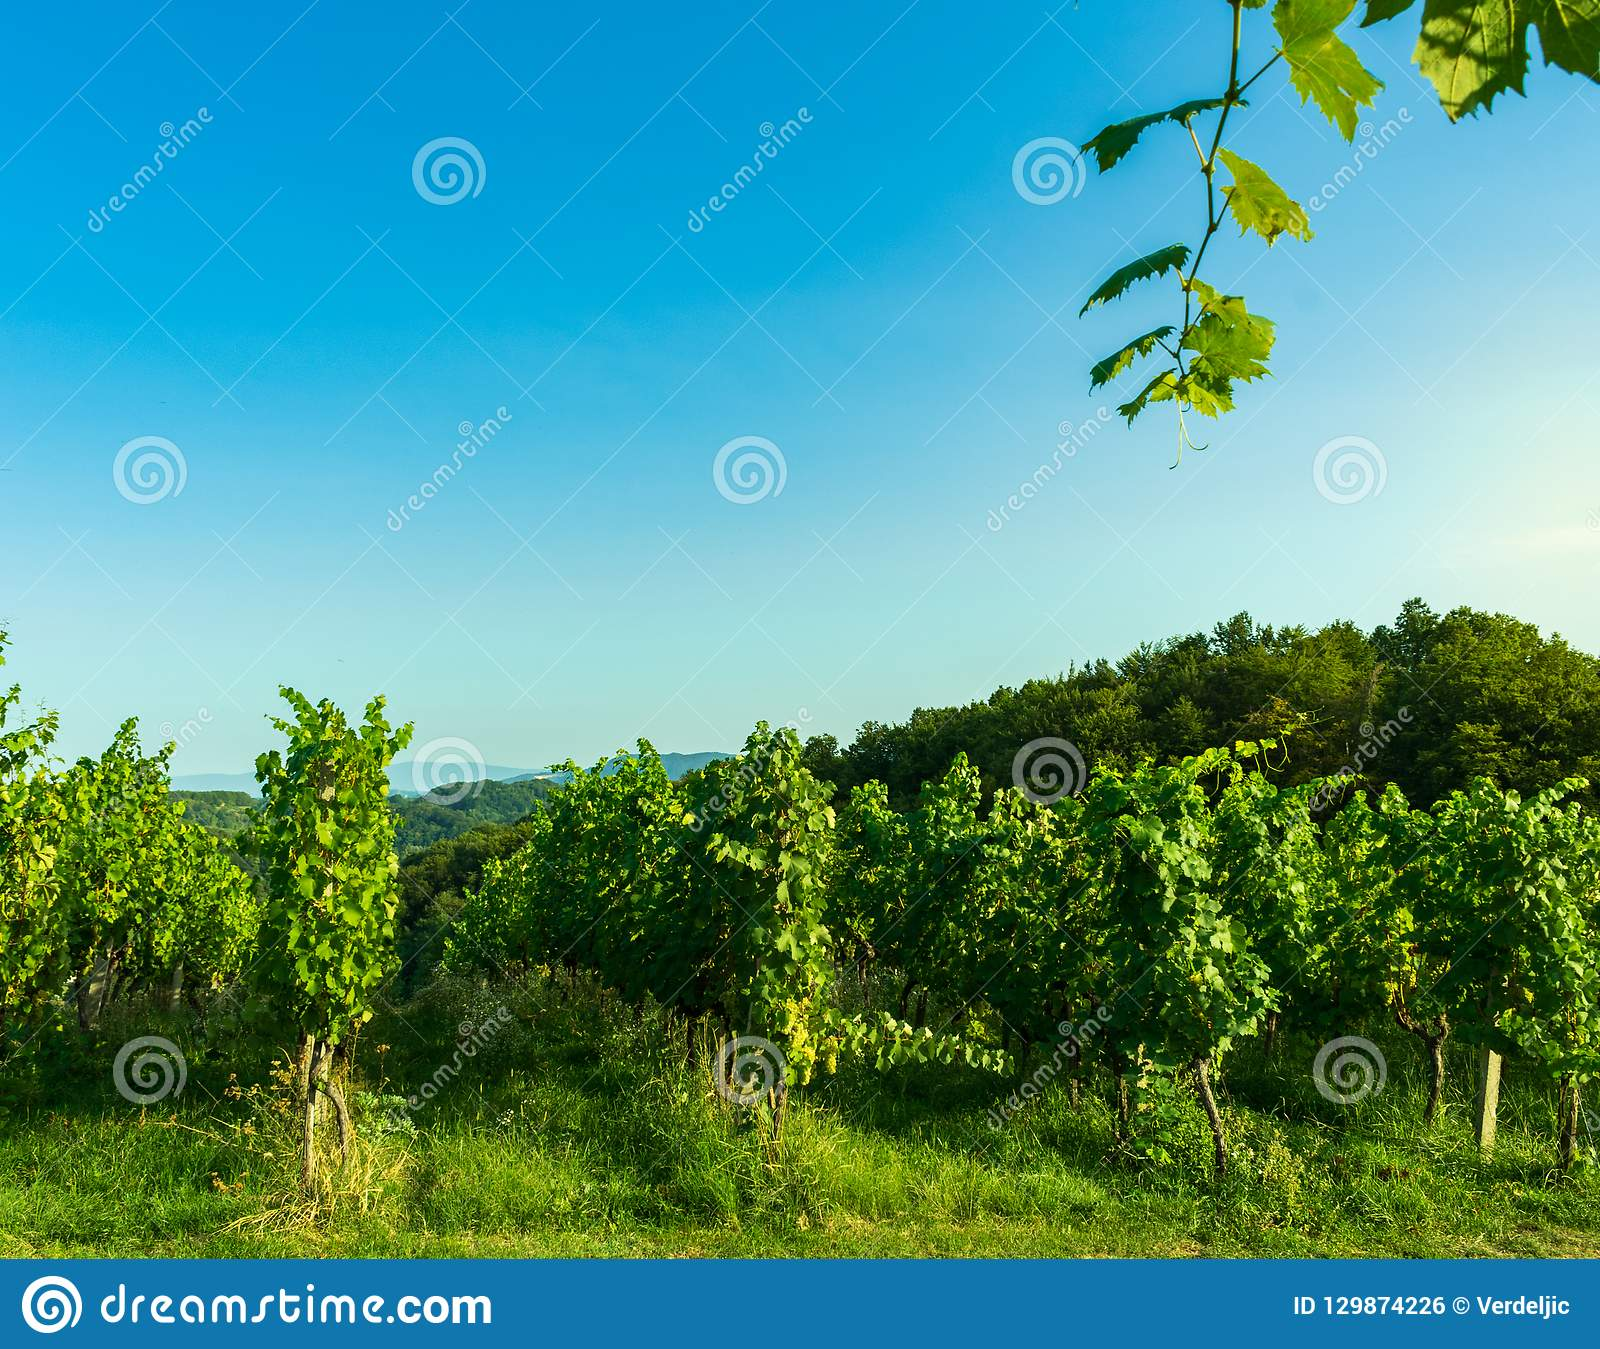 View of a cultivated vineyard in a hilly Zagorje region in Croatia, Europe, during a summer or autumn day